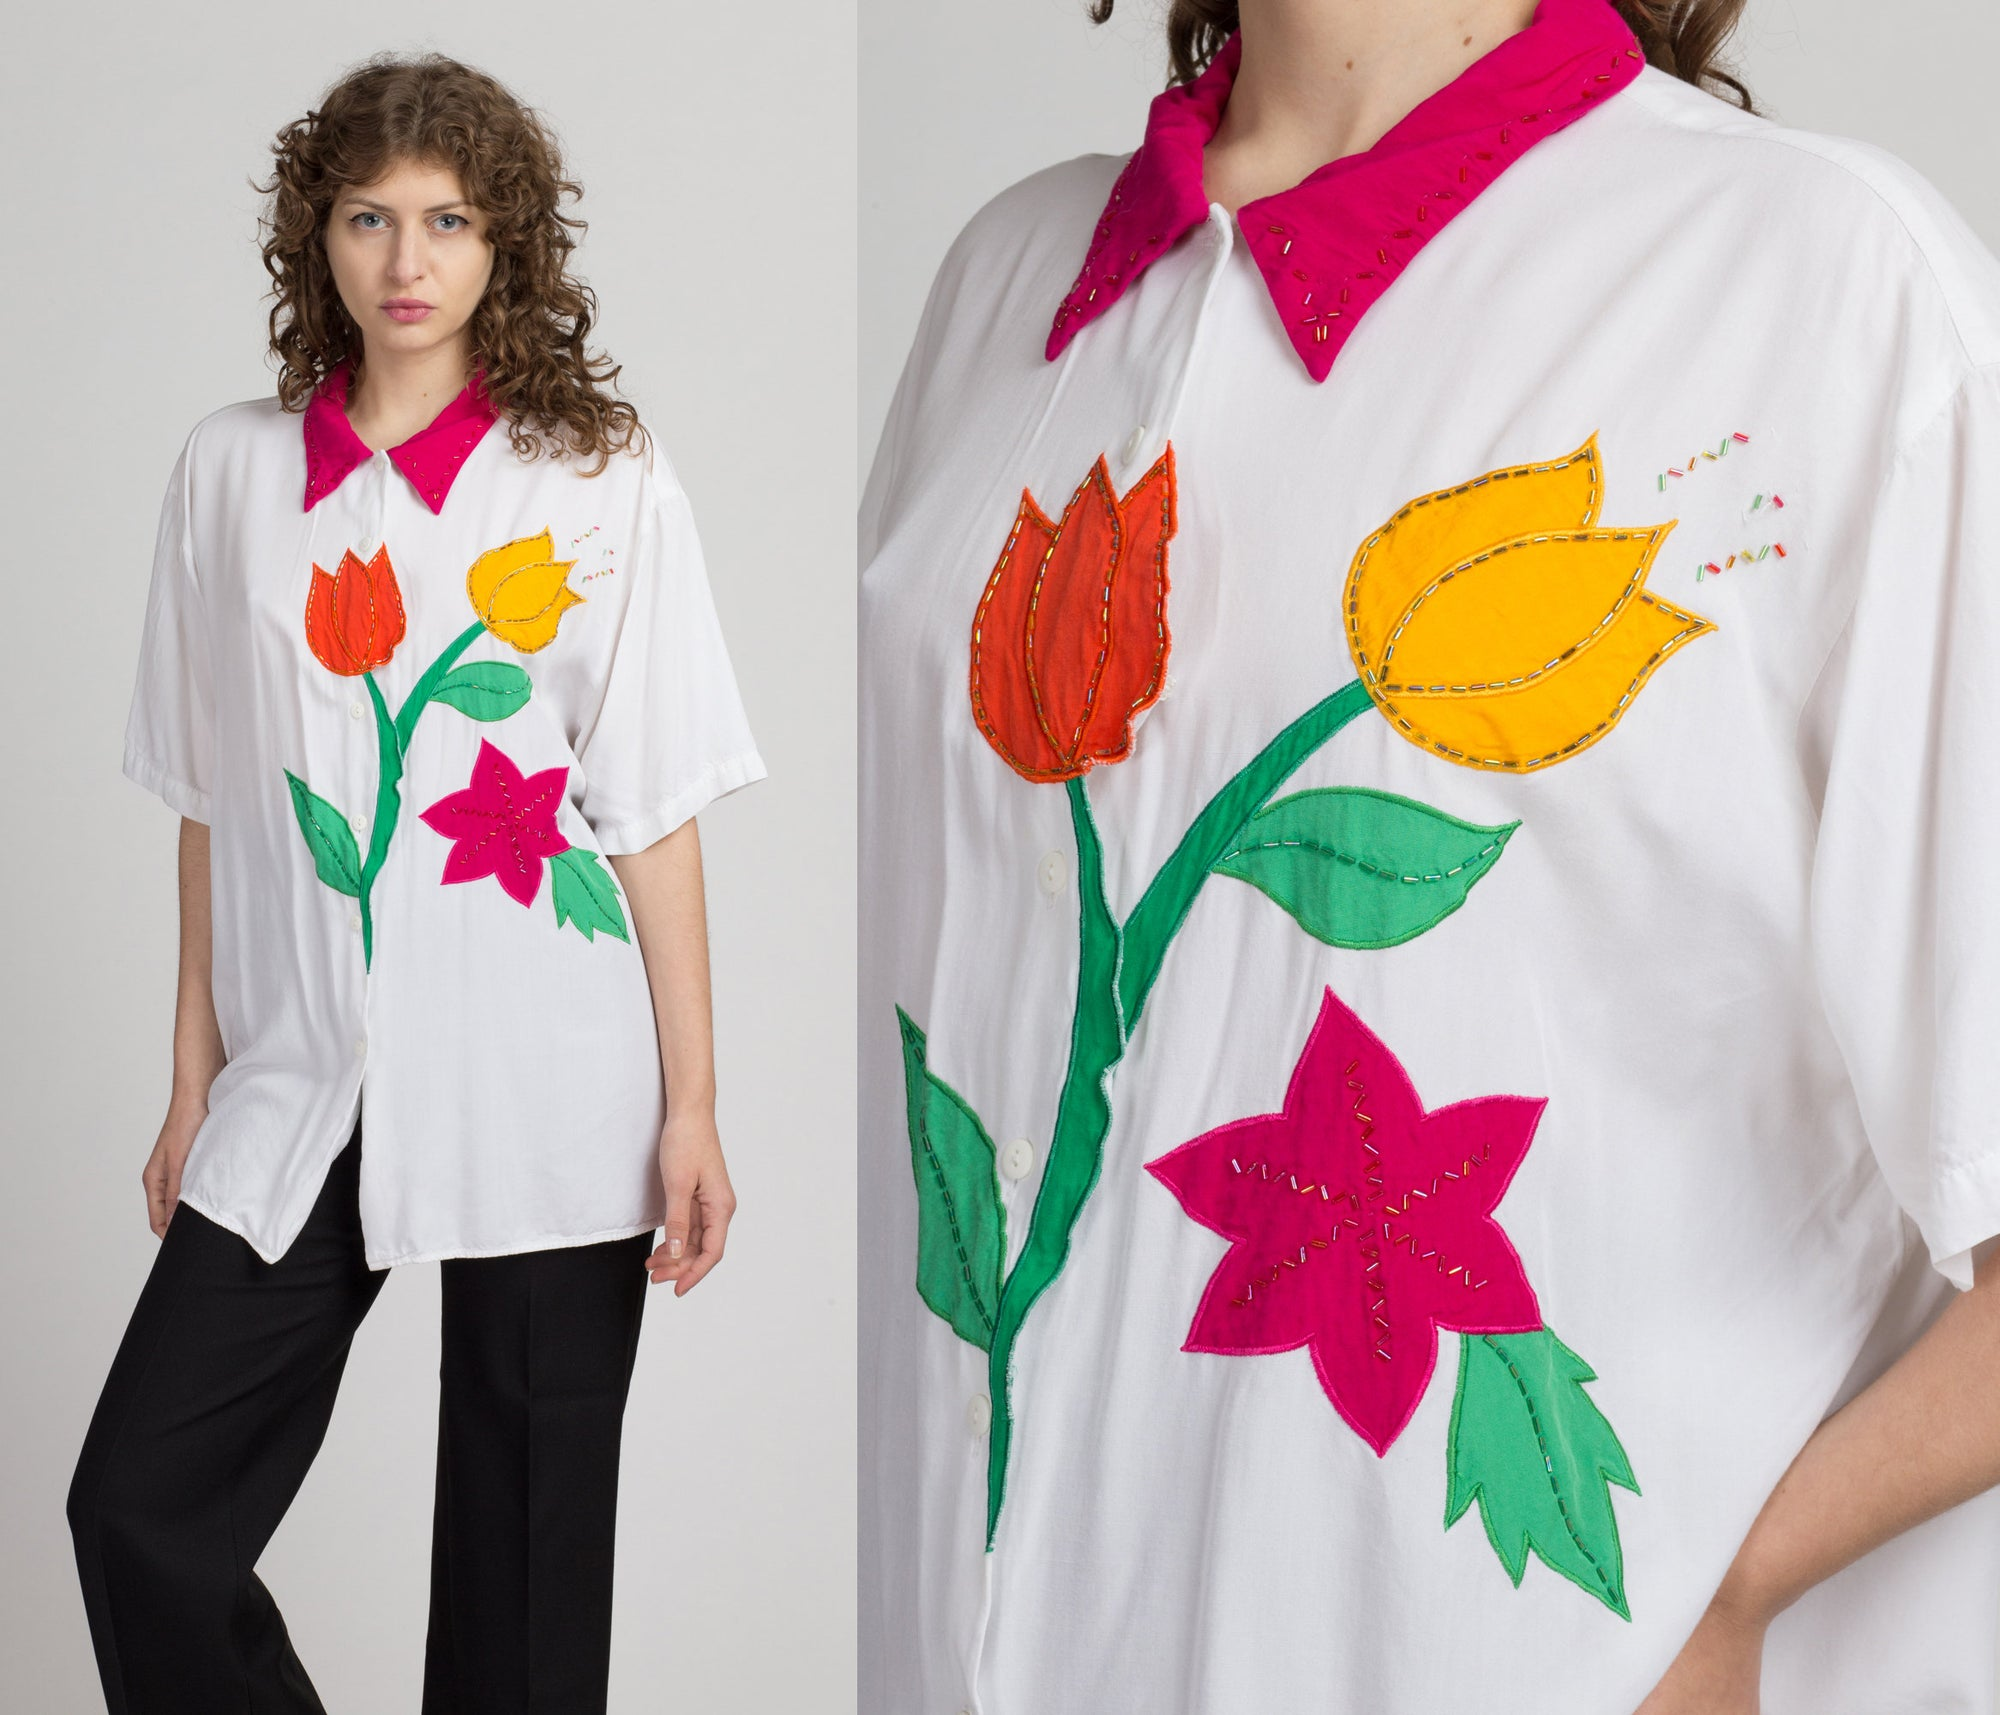 90s Beaded Floral Applique Blouse - 2X | Vintage White Collared Short Sleeve Button Up Novelty Top